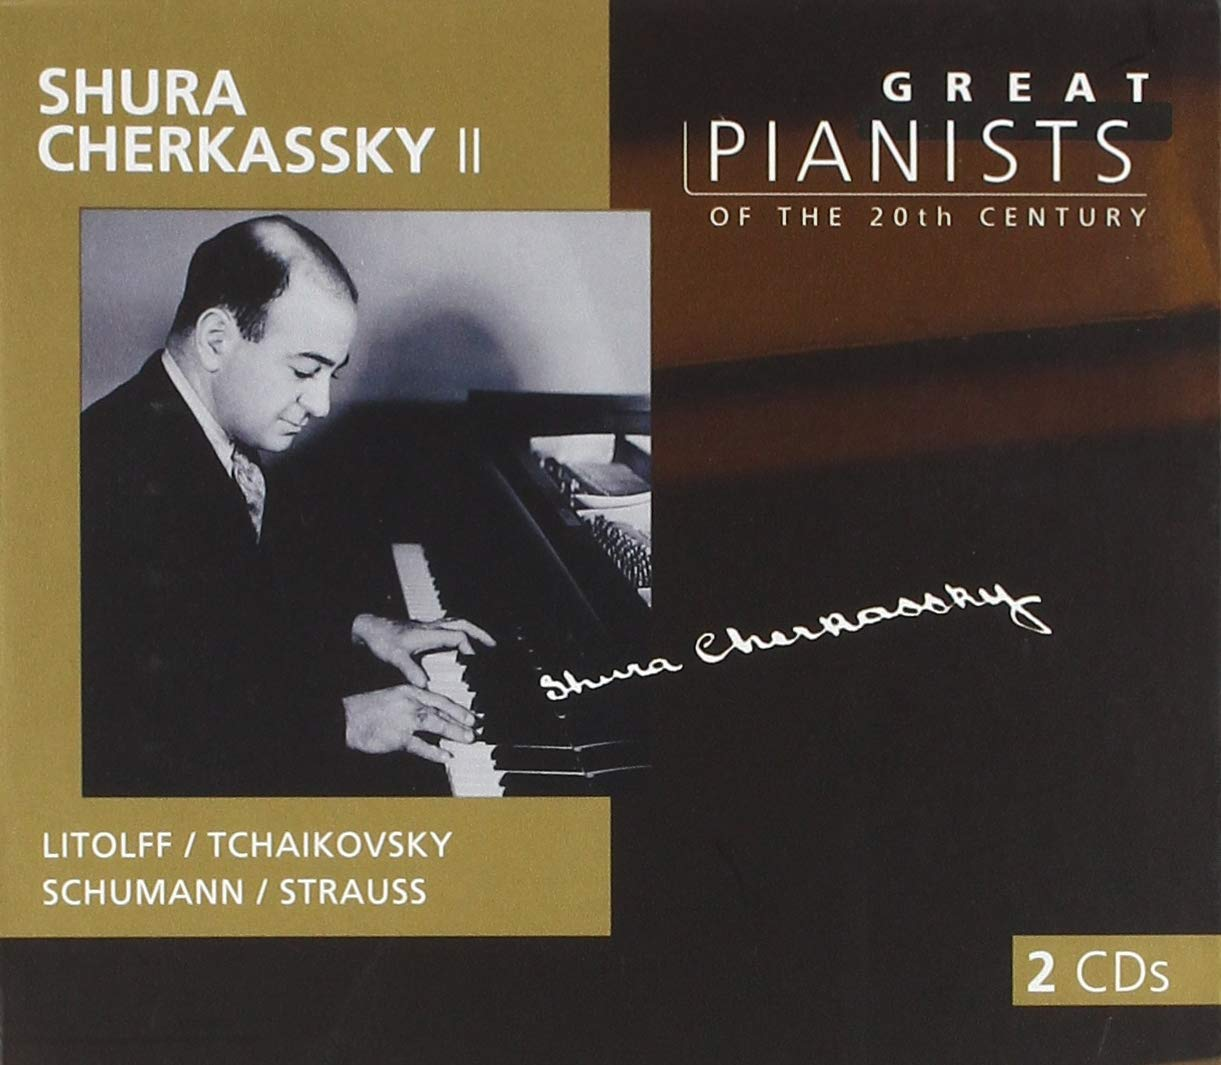 Great Pianists of the 20th Century - Shura Cherkassky Vol. 2 by Philips